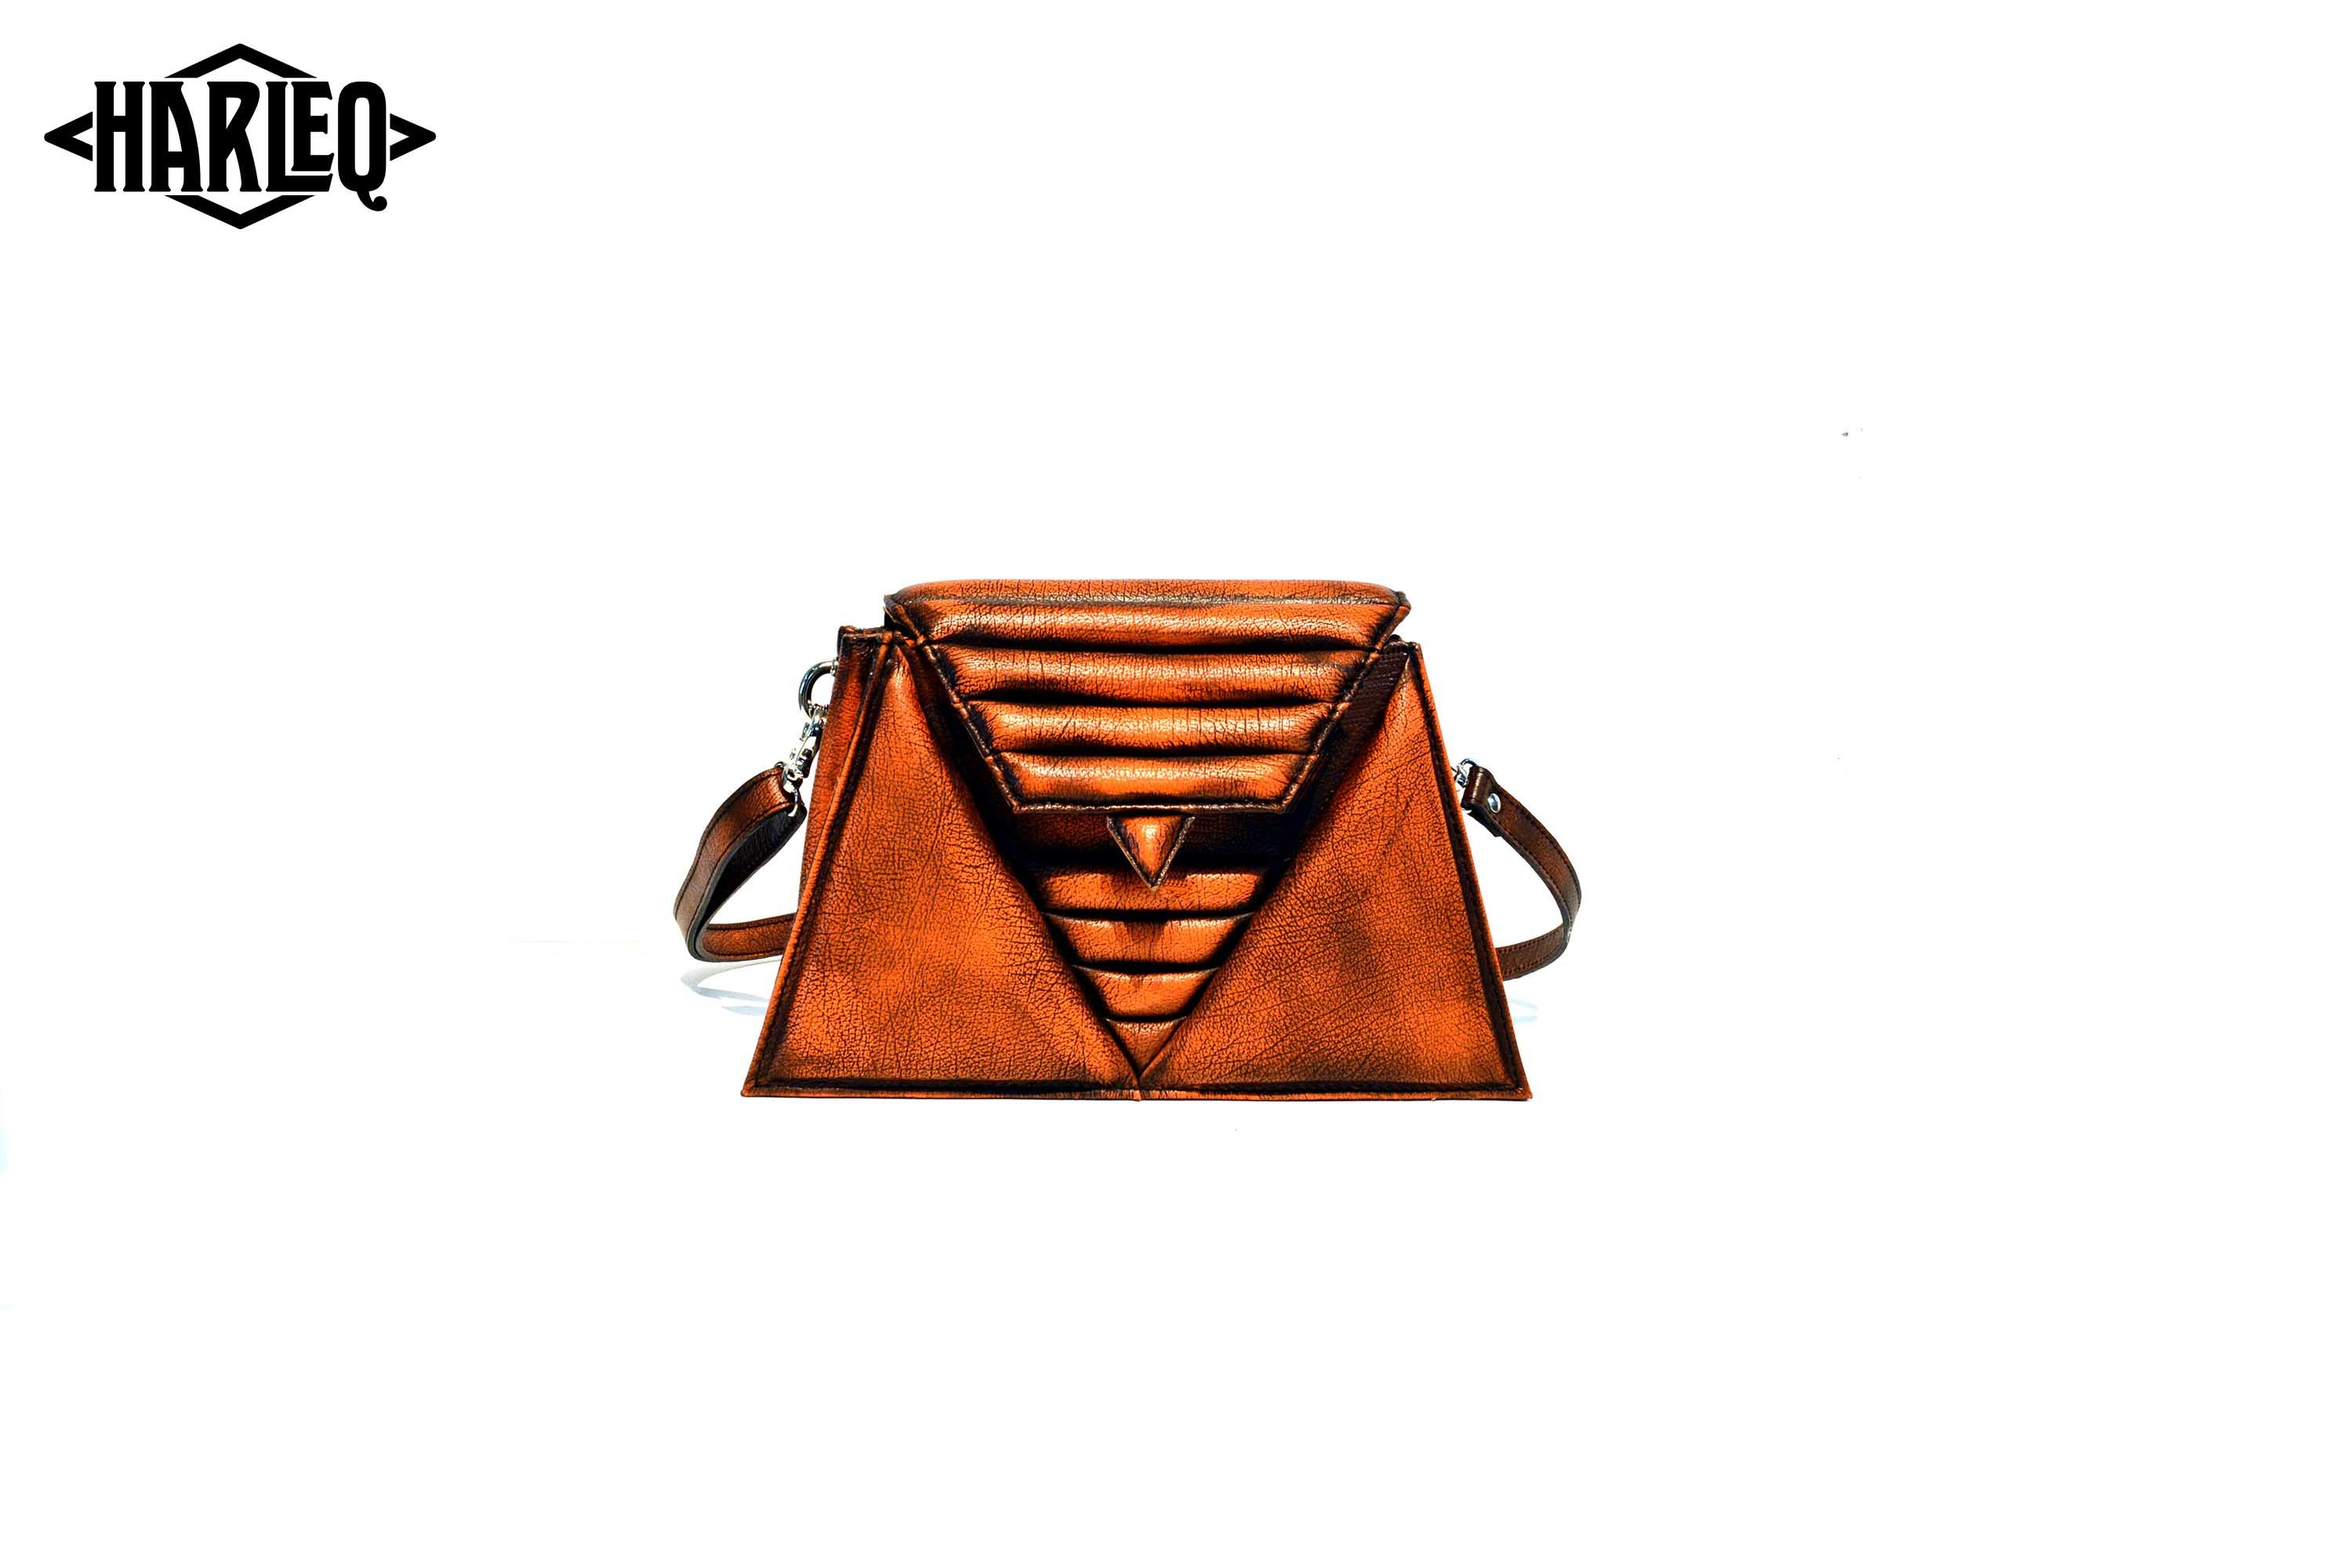 harleq luxury orange leather triangles bag